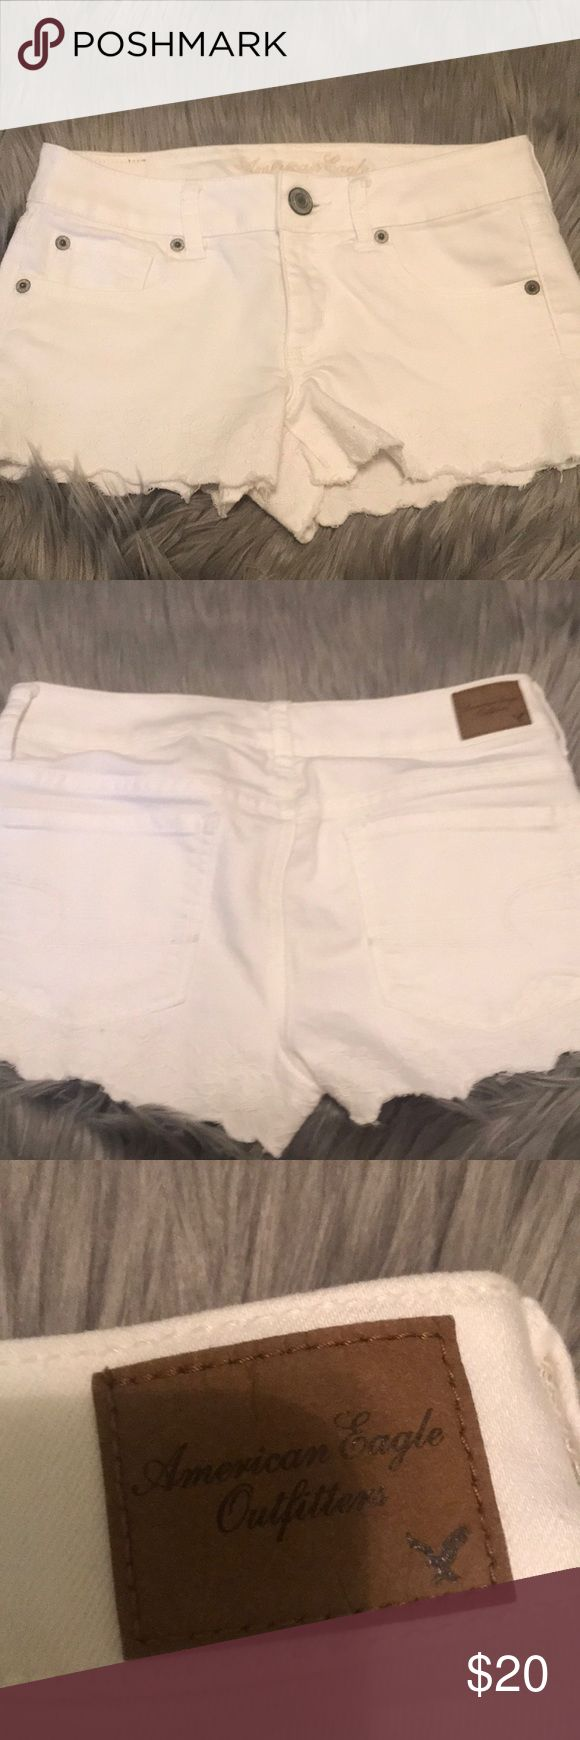 NWOT white Jean shorts. NWOT. Super cute white shorts. Can dress up or down! No stains, rips, fading, or discoloring. I have a shopping problem where i buy things and don't wear them. Shhhh don't tell my husband 🤣 These are pretty short! I have kids and I'm not 21 anymore so my butt falling out of them isn't an option. However they're super cute on!!! If only I was single and no kids! Lol. Bundle and save or make an offer! American Eagle Outfitters Shorts Jean Shorts